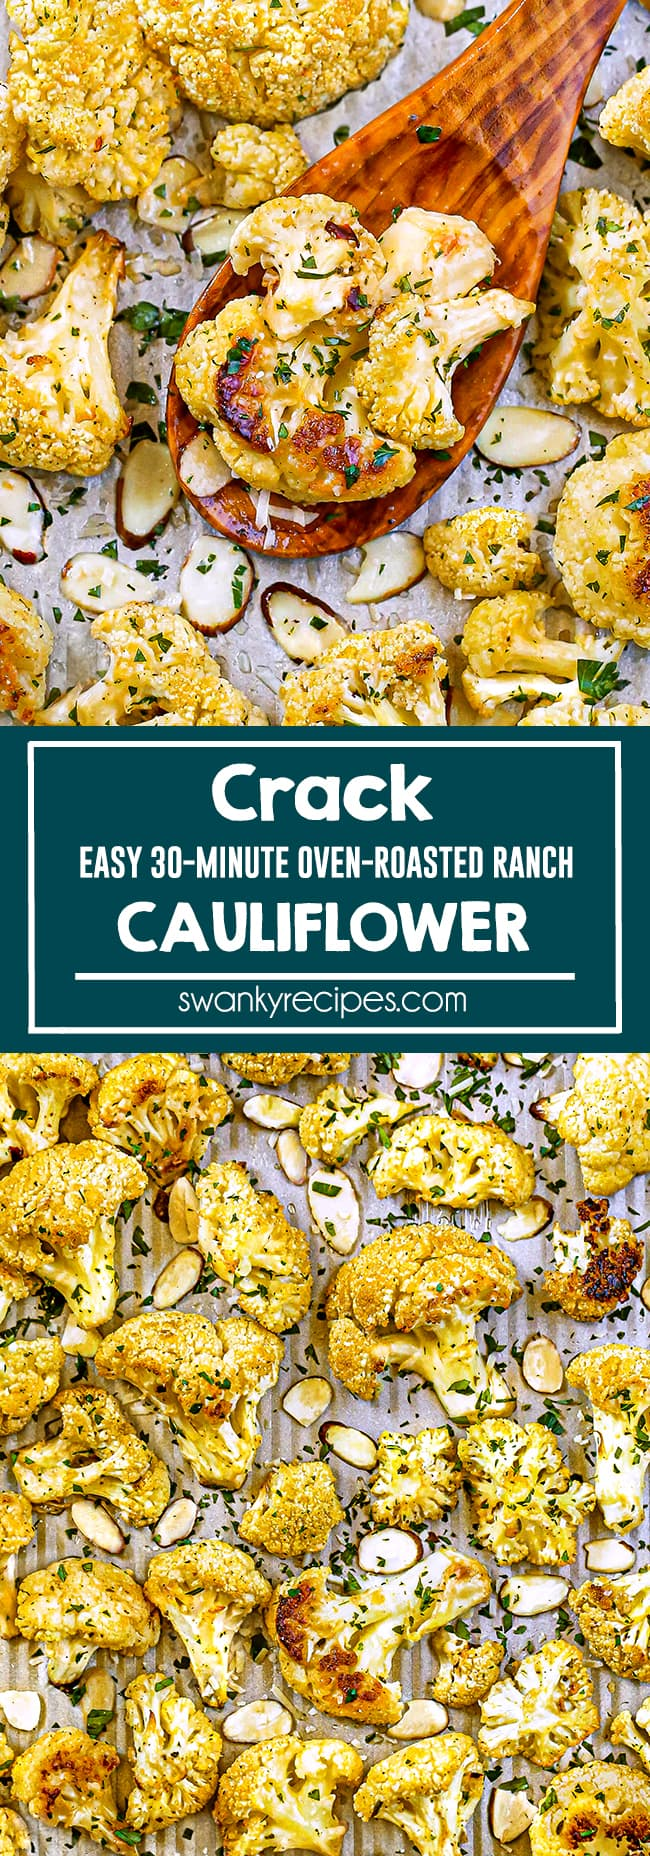 Crack Cauliflower - A cropped image of cauliflower florets served on a sheet pan with a wooden spoon in the center, sliced almonds and parsley.